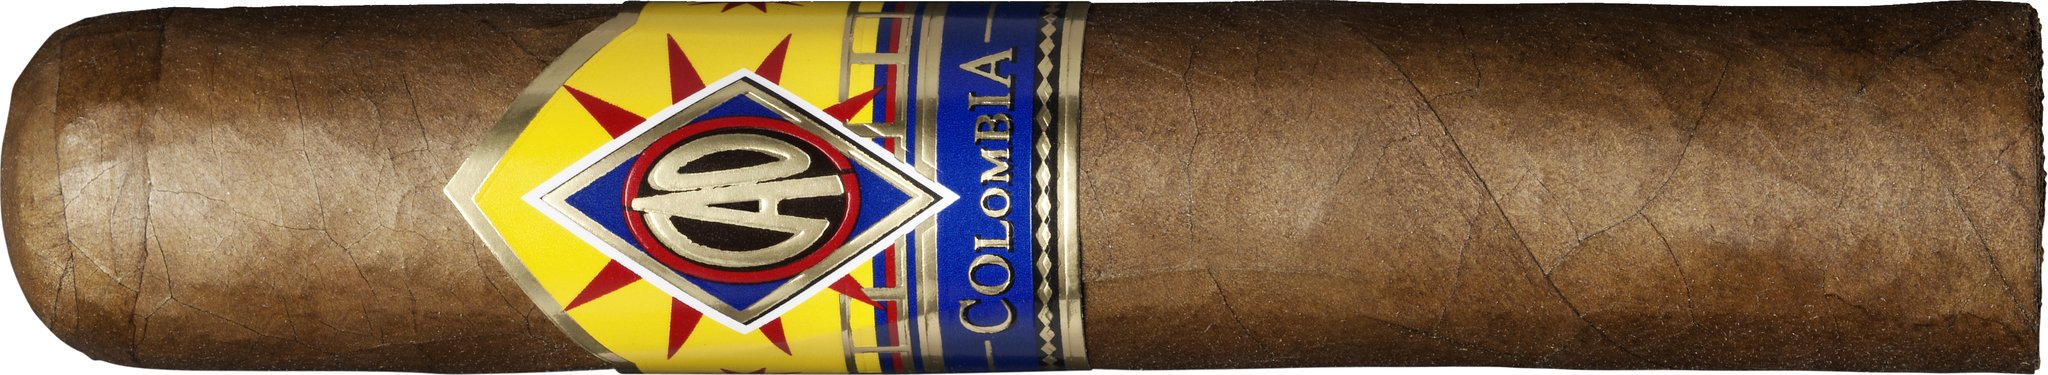 CAO Colombia Tinto